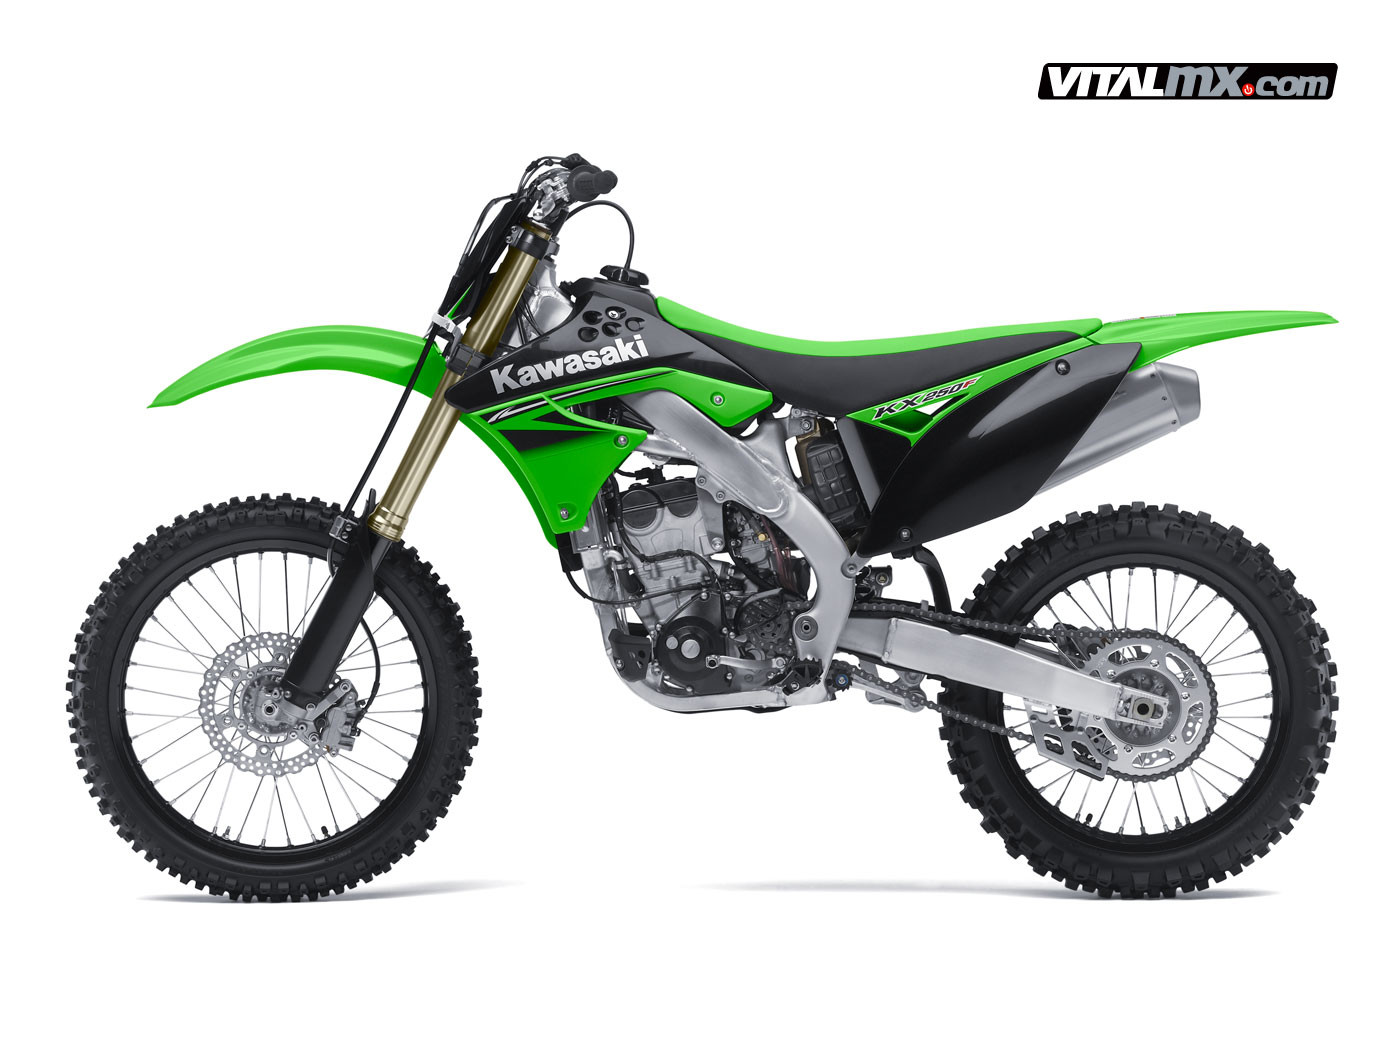 2010 Kawasaki KX250F - 2010 Kawasaki KX250F Wallpapers - Motocross ...